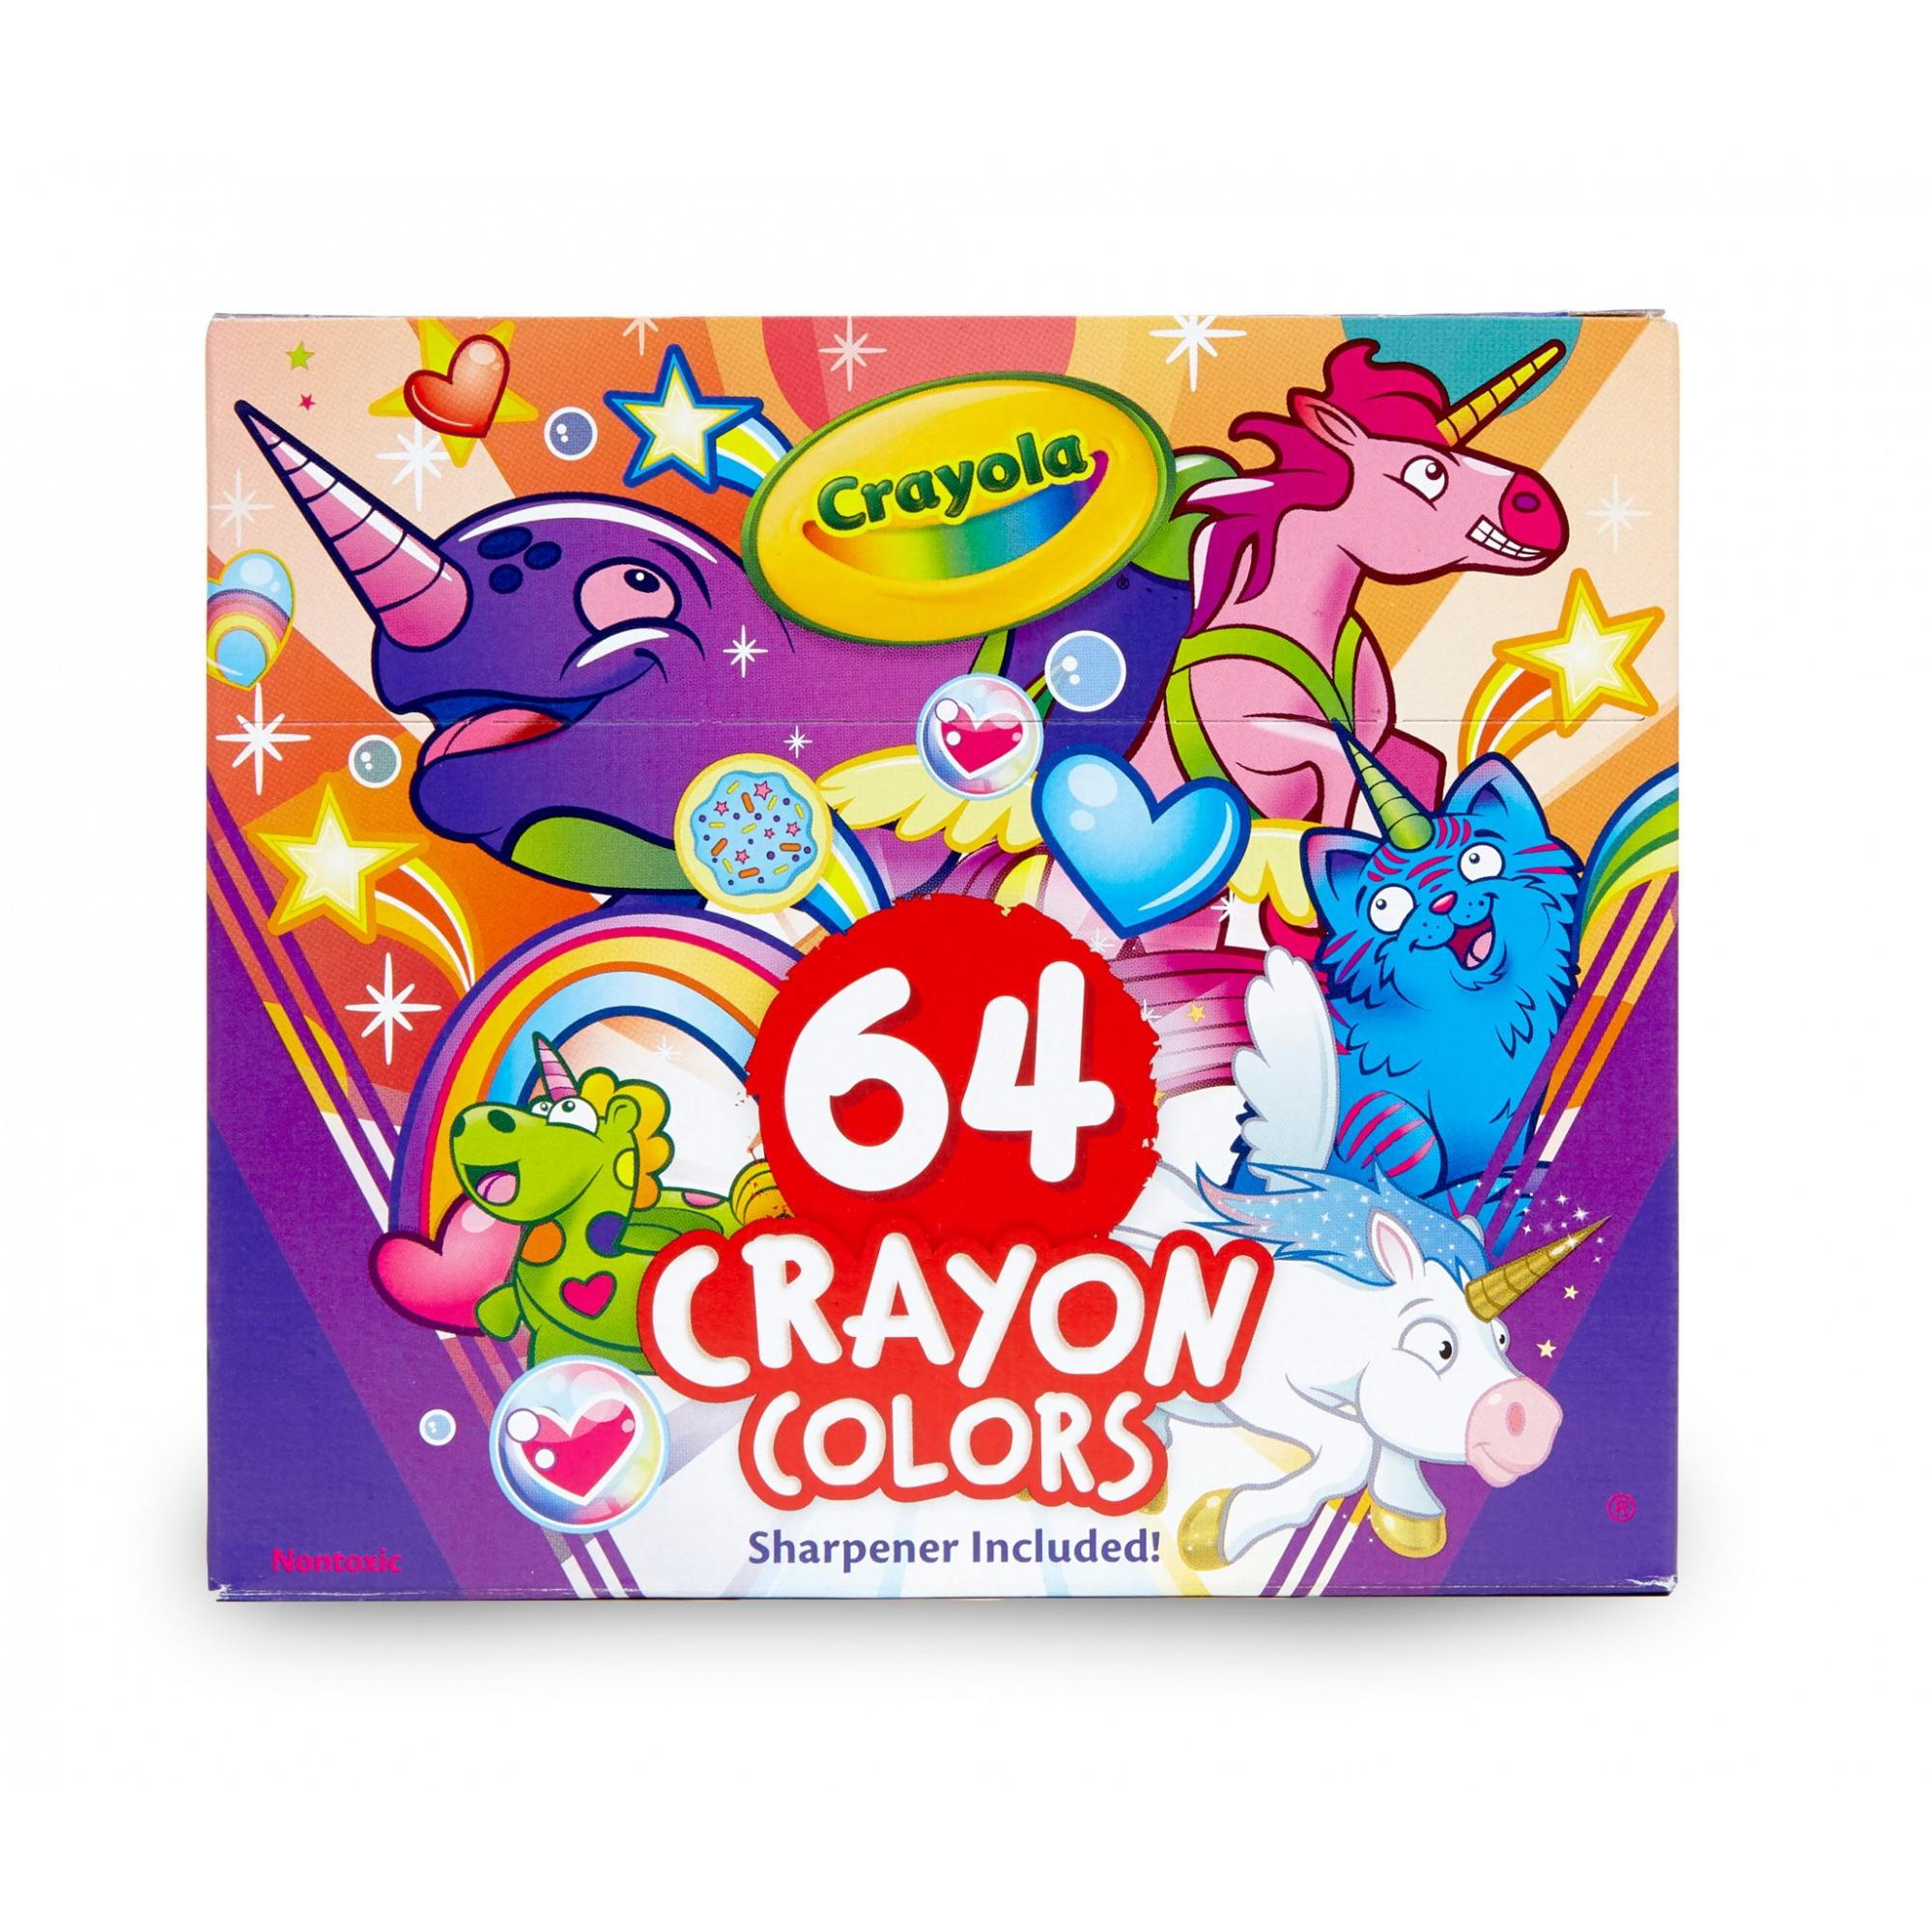 Crayola Uni-Creatures Coloring Pages and 64 Count Crayons